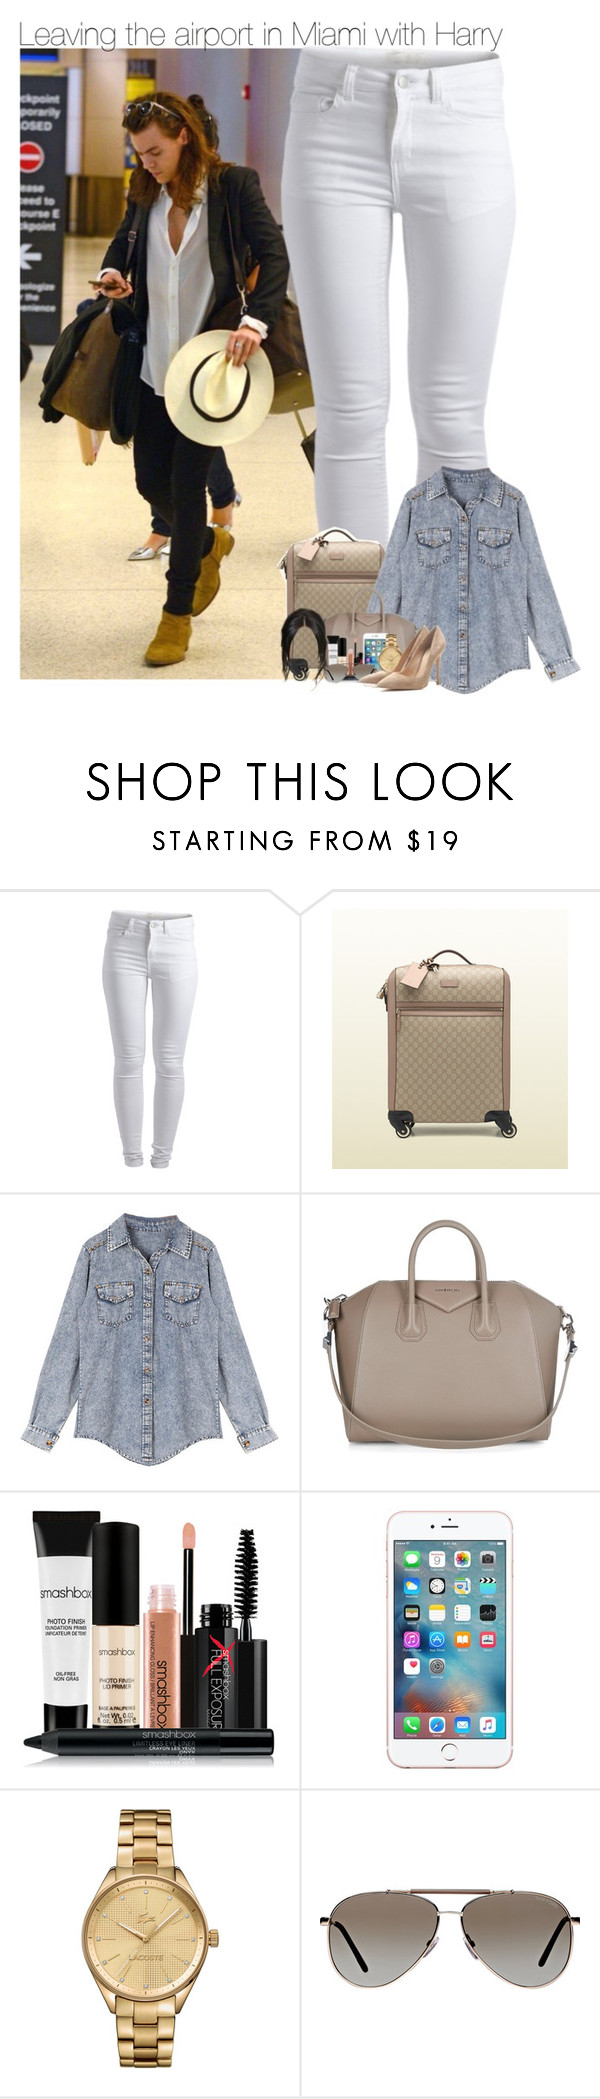 Sem título #1110 by vicmiranda on Polyvore featuring moda, Retrò, Pieces, Gianvito Rossi, Gucci, Givenchy, Lacoste, Tom Ford and Smashbox